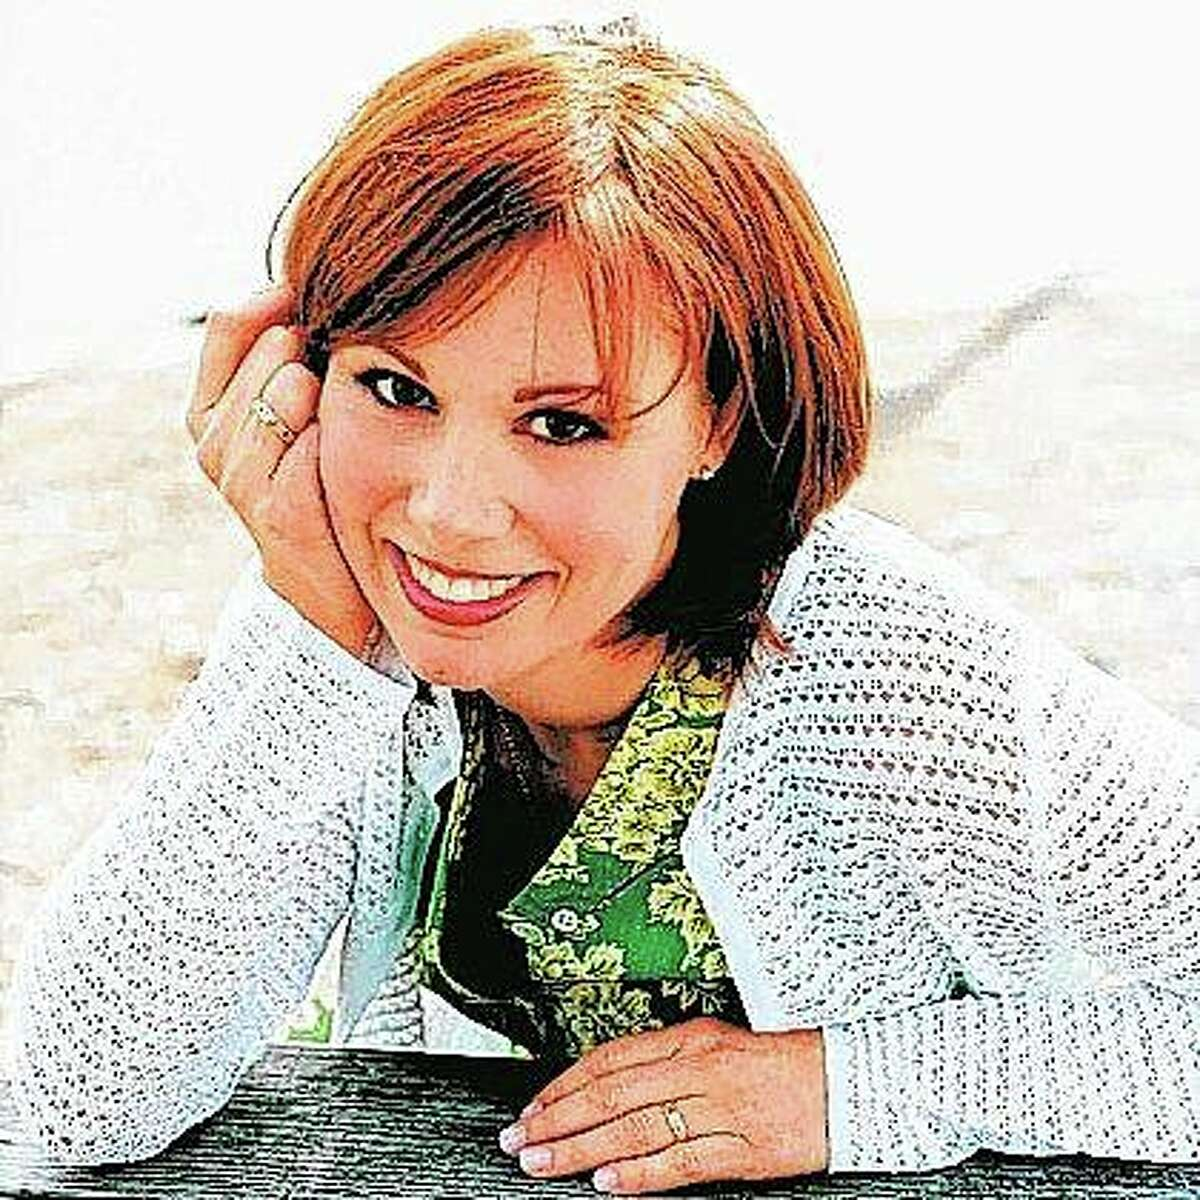 Musician Suzy Bogguss will be in concert June 12 at The Legacy Theater at Carl Sandburg College in Carthage.